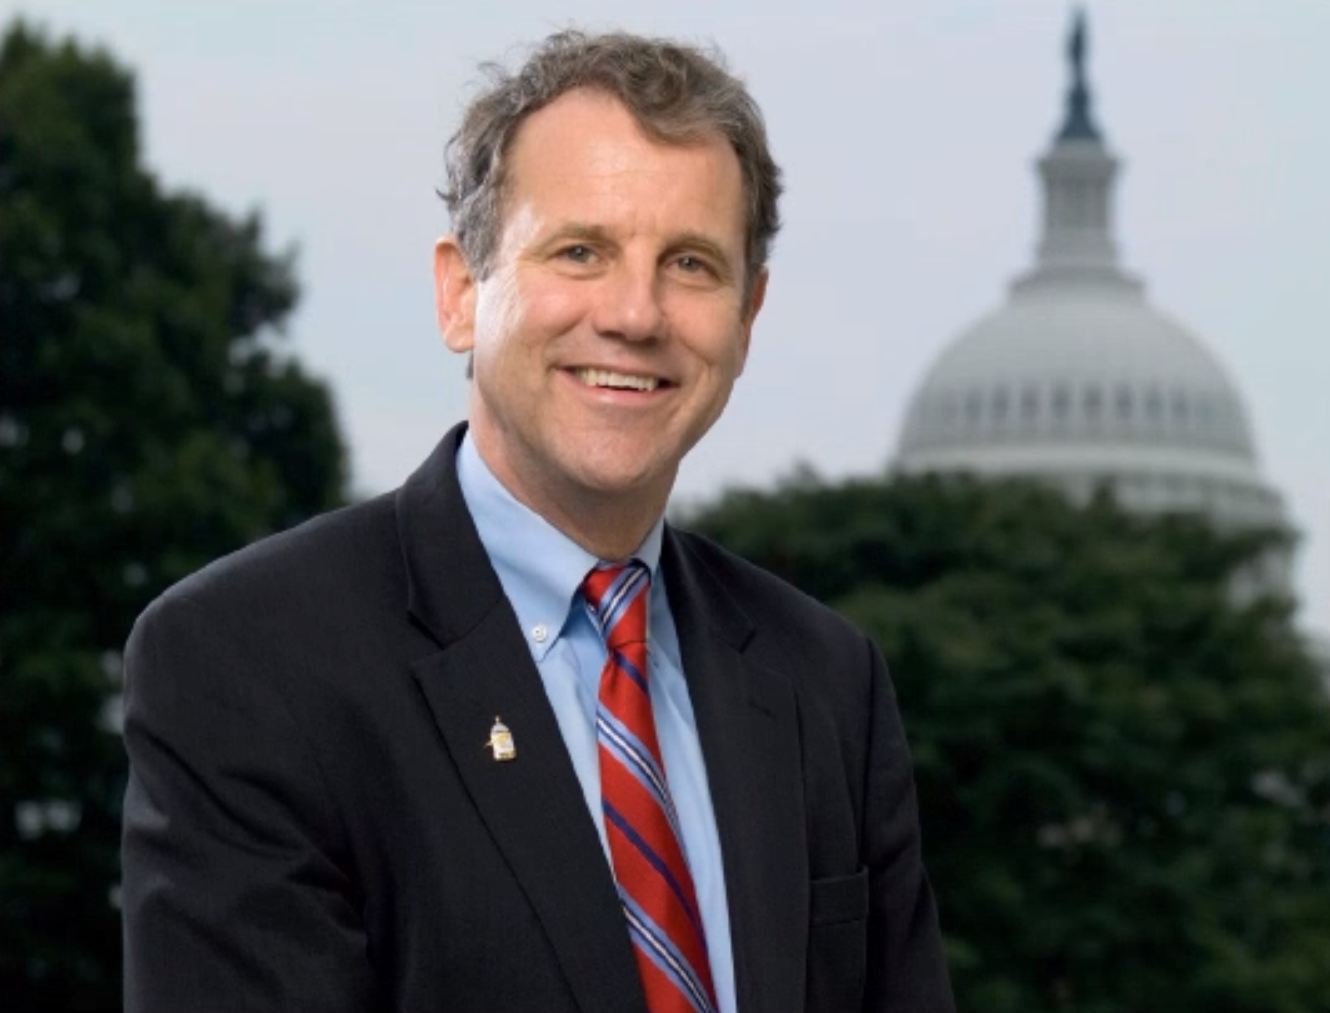 Ohio Senator Sherrod Brown has been involved in Ohio politics since 1975. He has yet to declare that he is running for president, but his recent visits to early primary states have people speculating that he will announce soon.